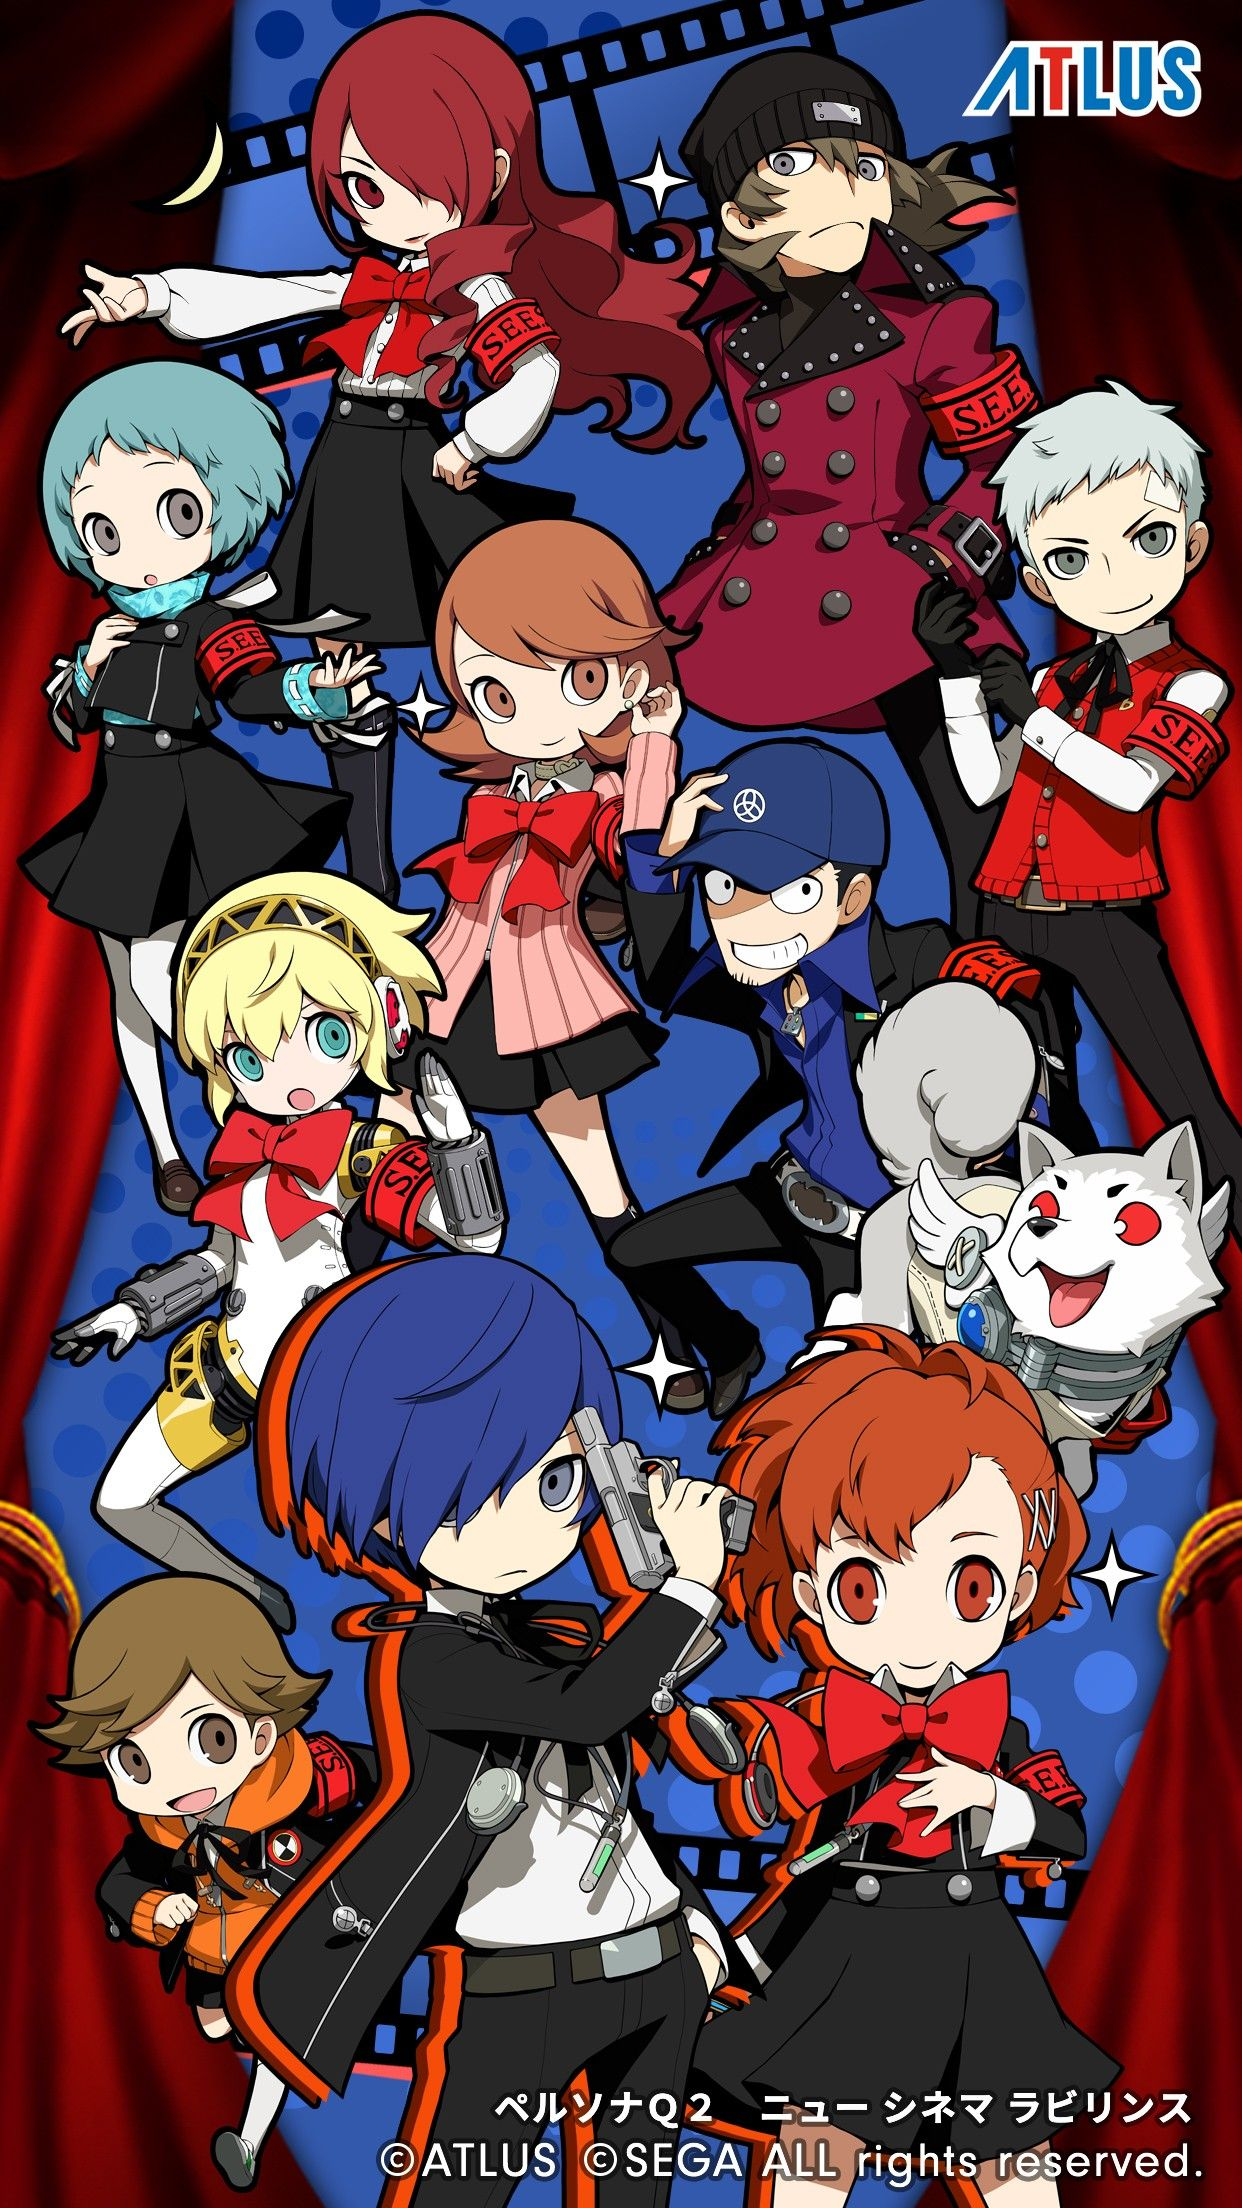 Persona Q2 New Cinema Labryinth Persona 3 デフォルメキャラ